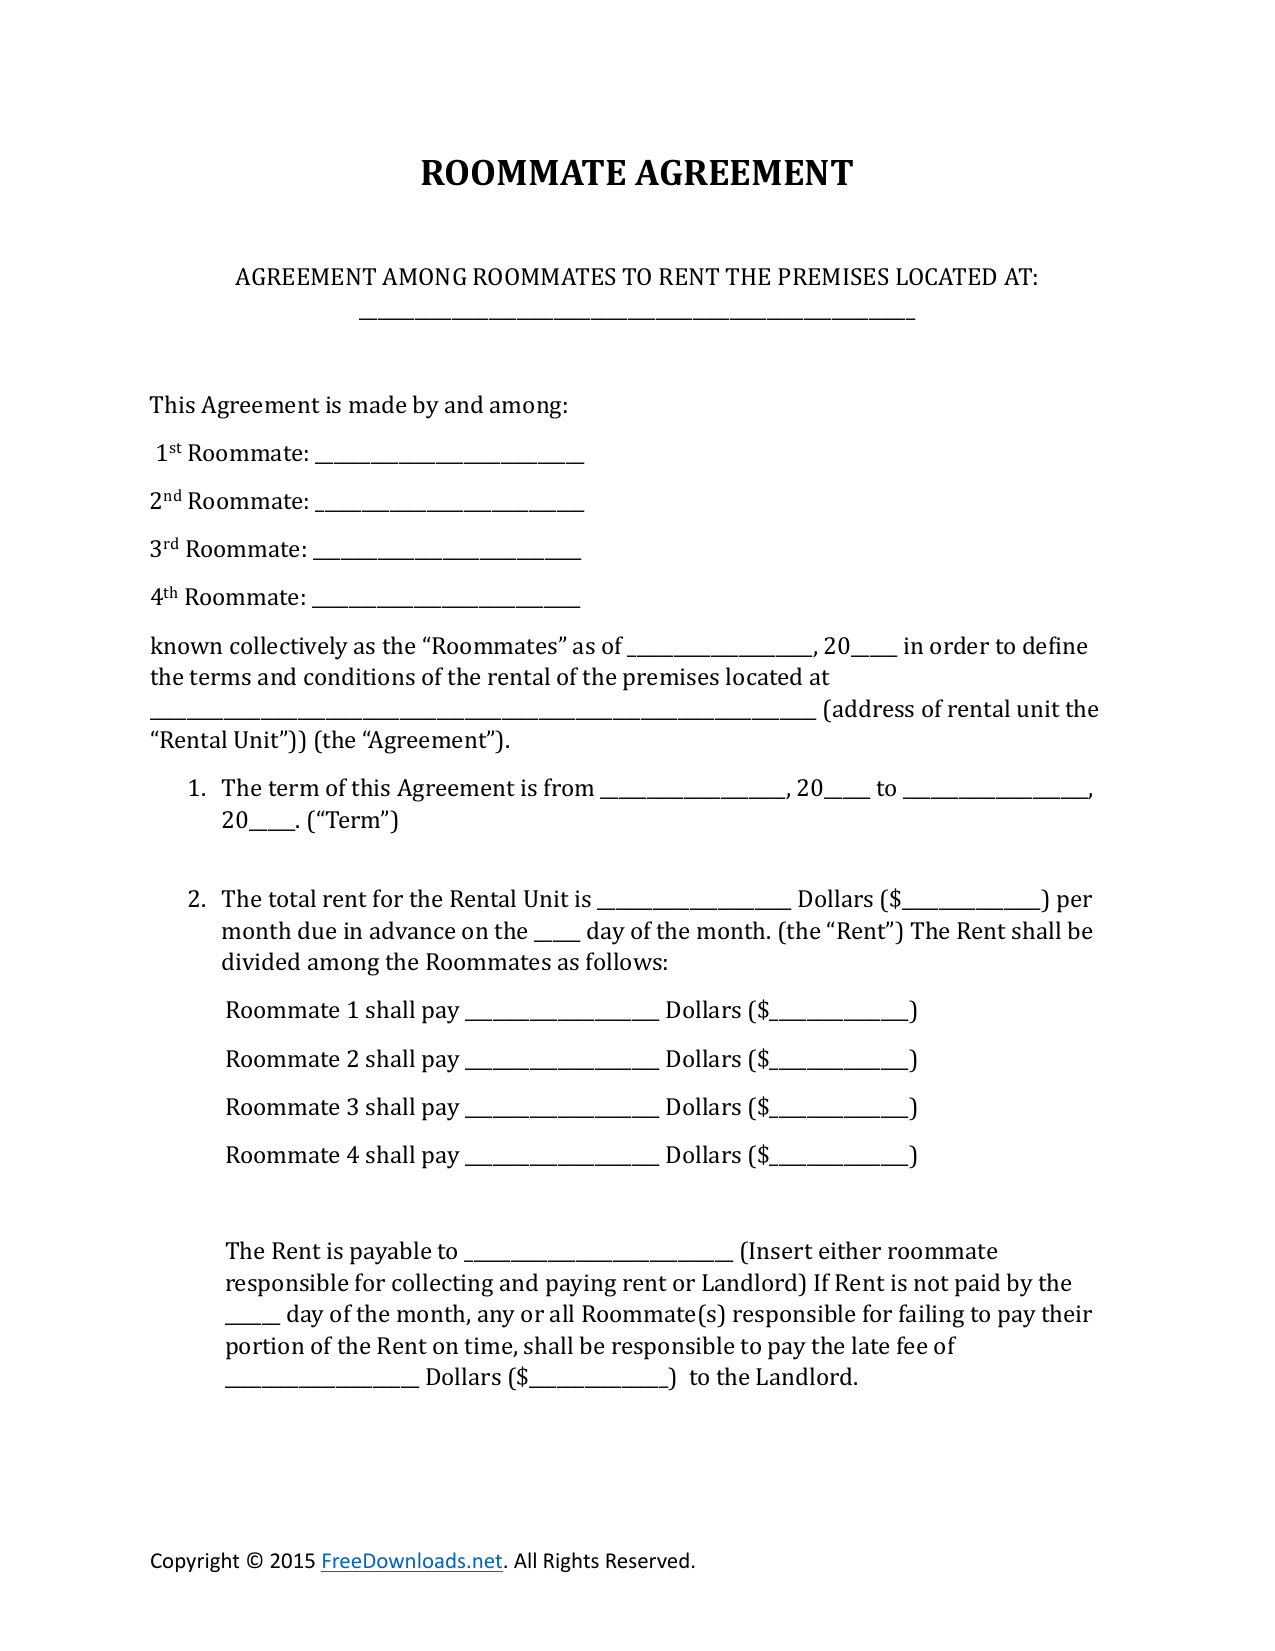 Roommate Rental Lease Agreement Form